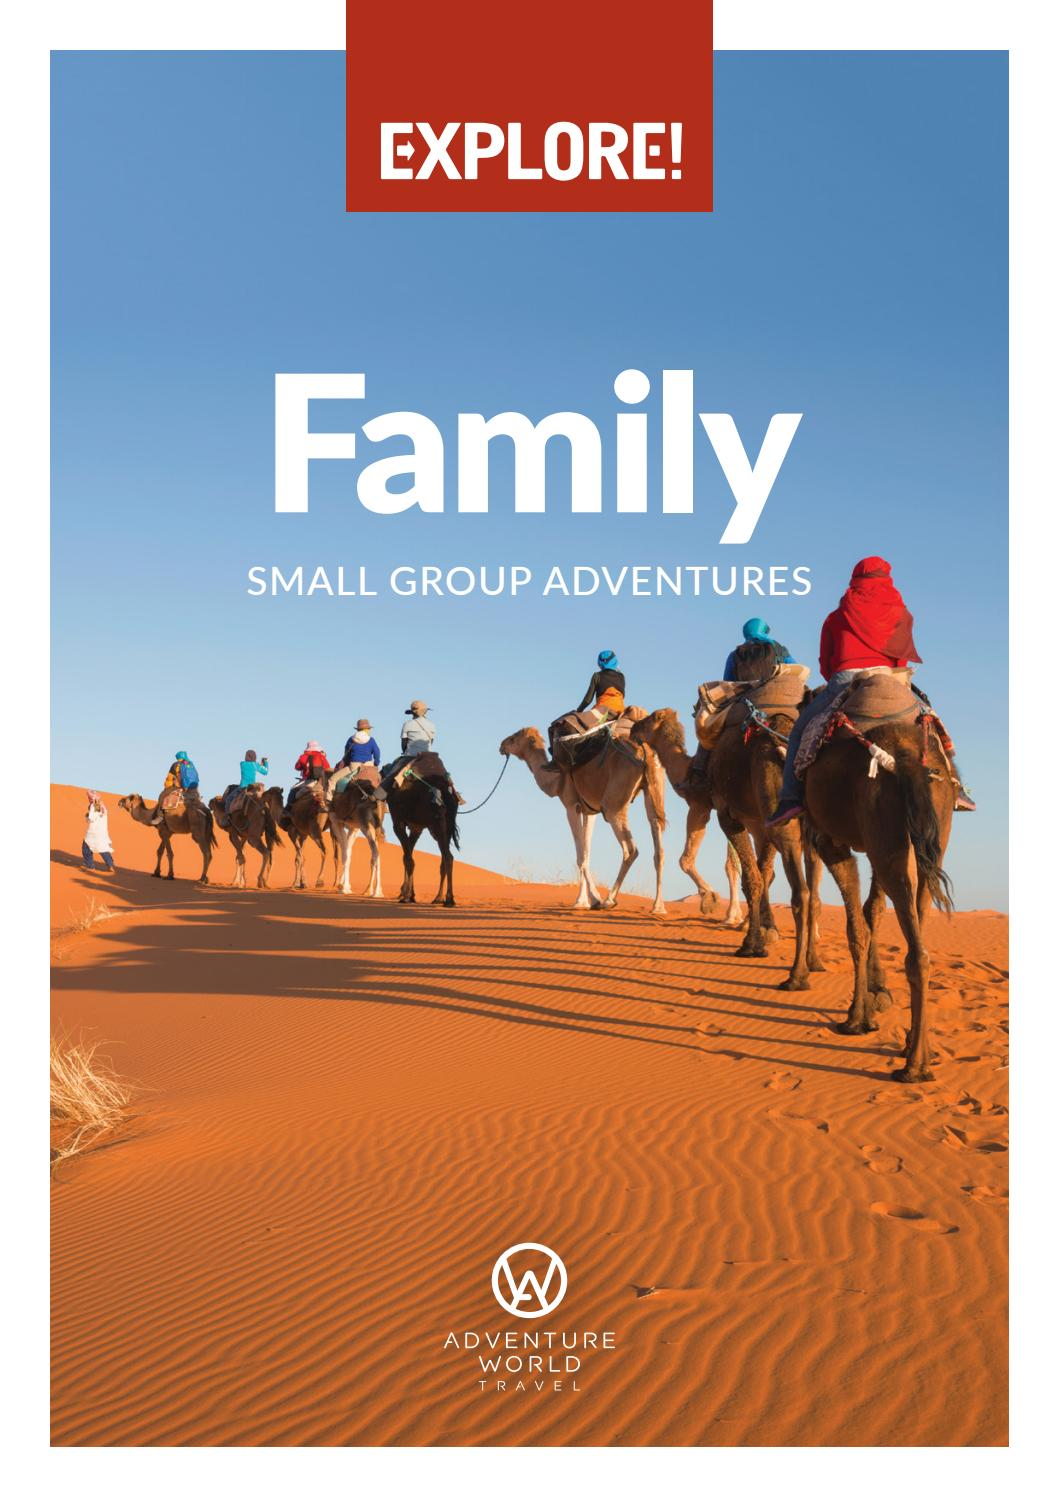 Explore Worldwide Family Adventures